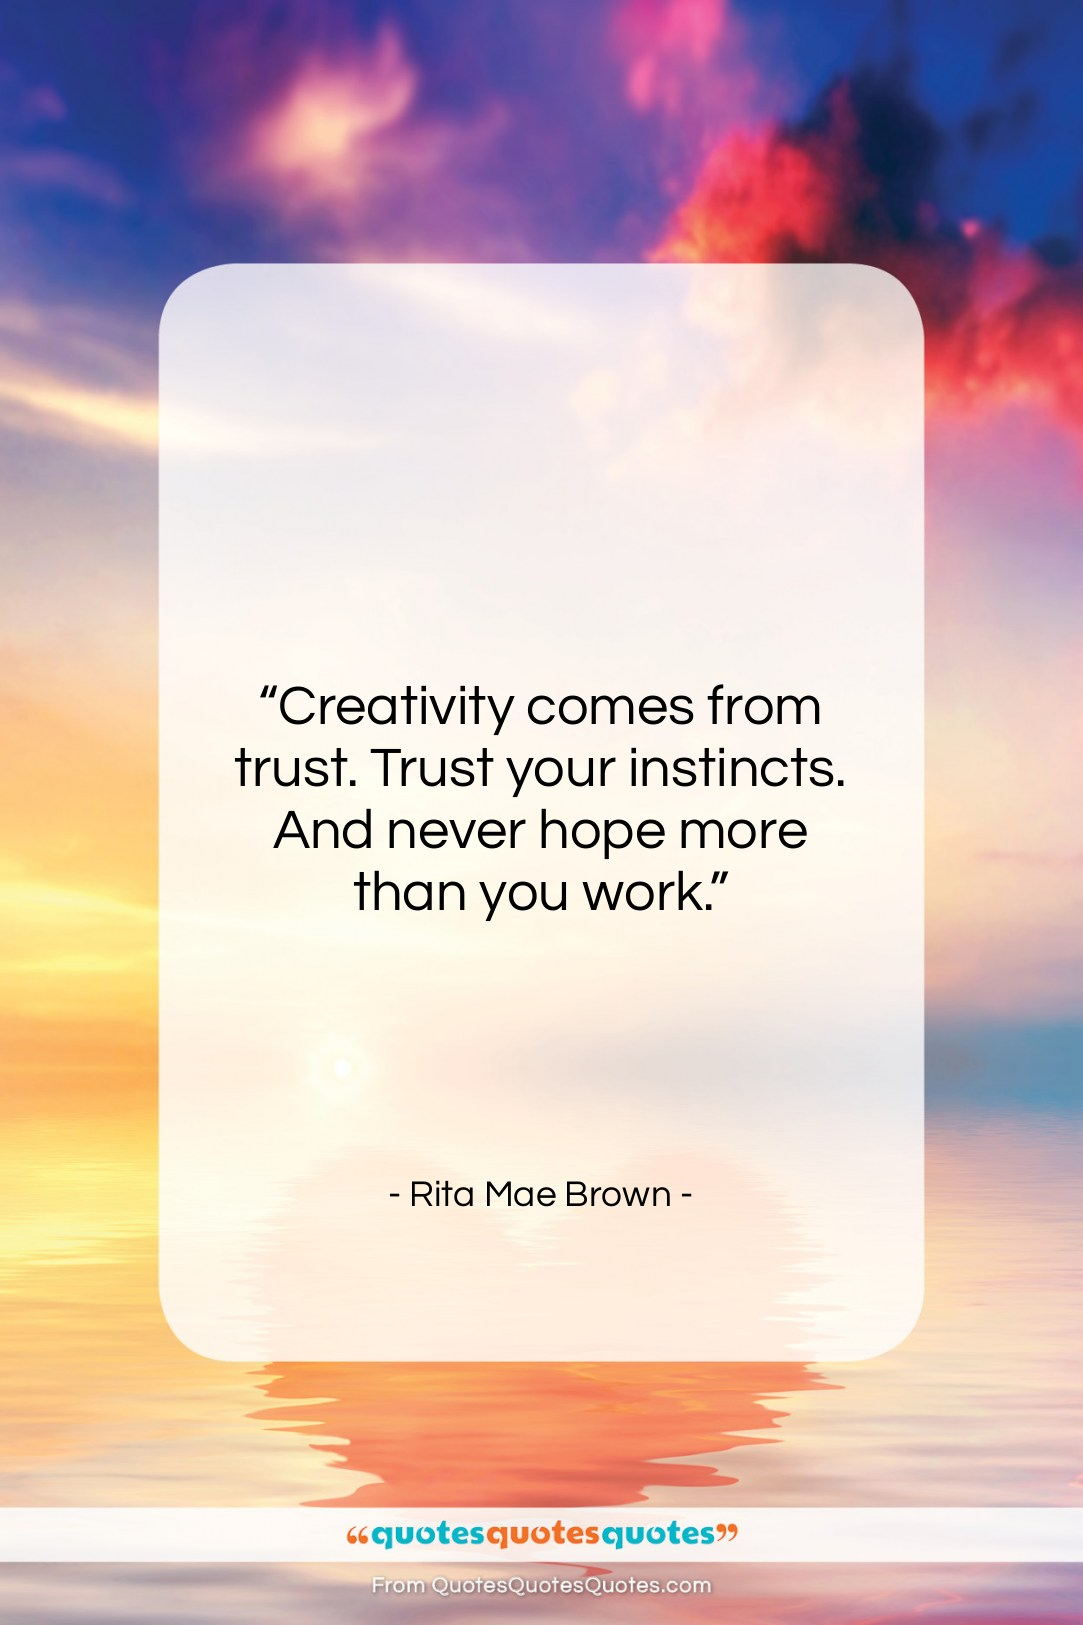 Get The Whole Rita Mae Brown Quote Creativity Comes From Trust